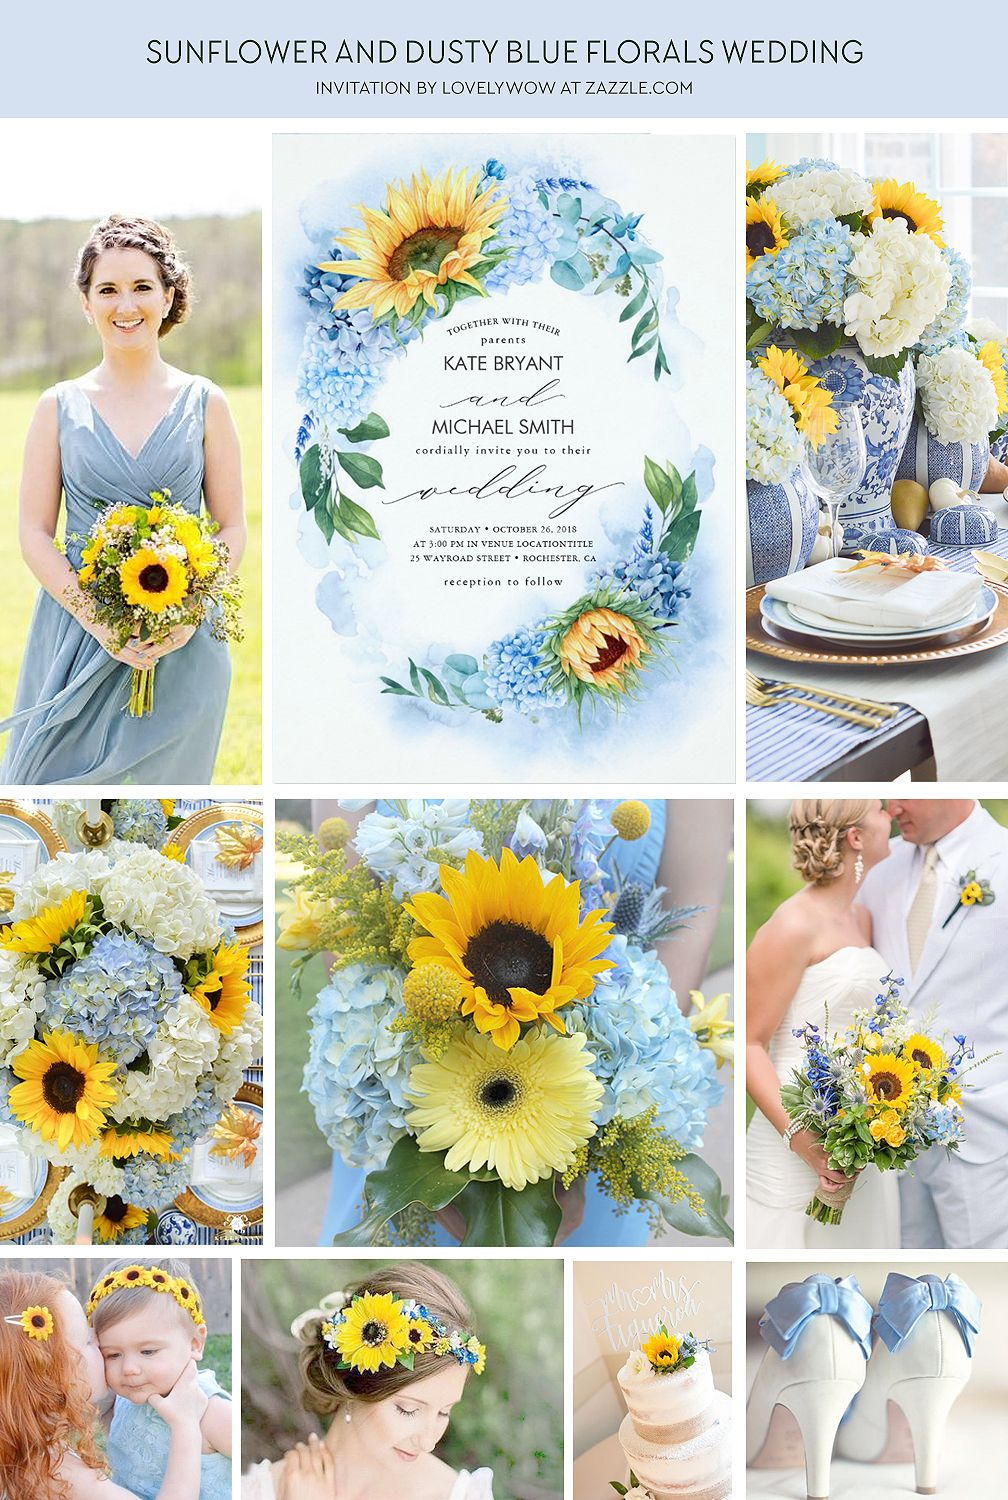 Sunflowers and Dusty Blue Hydrangea Floral Wedding